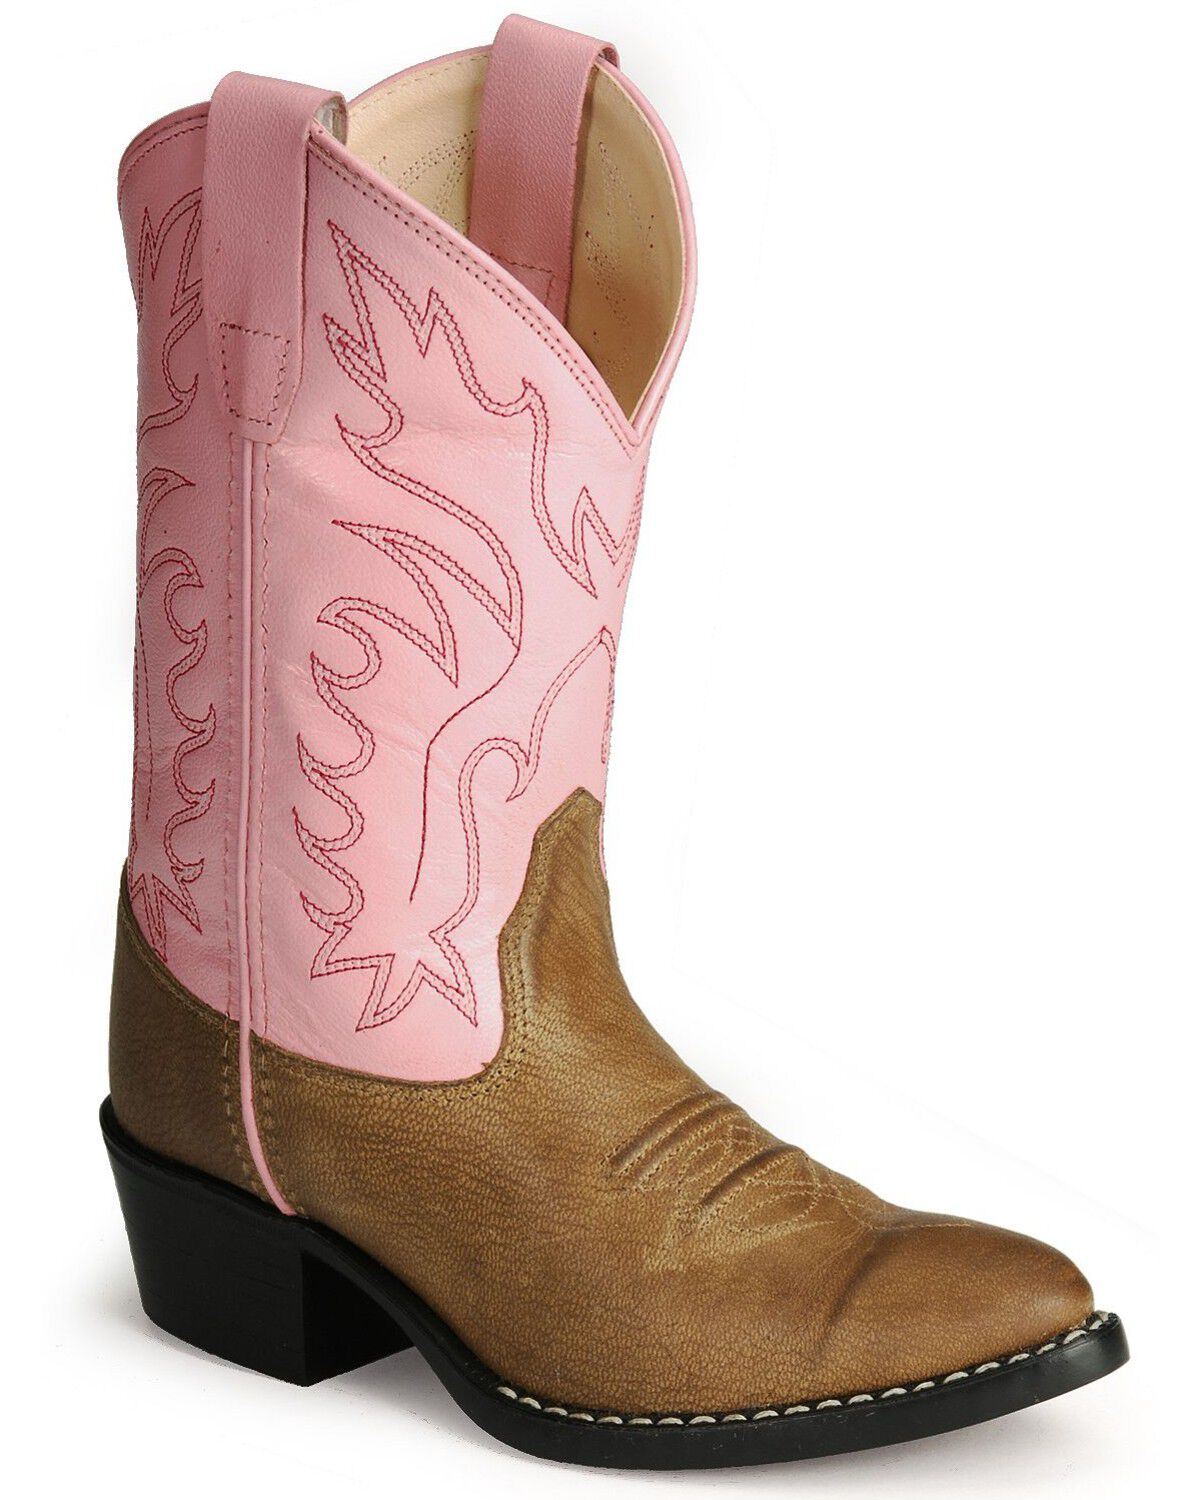 Kids' Best Selling Cowboy Boots in